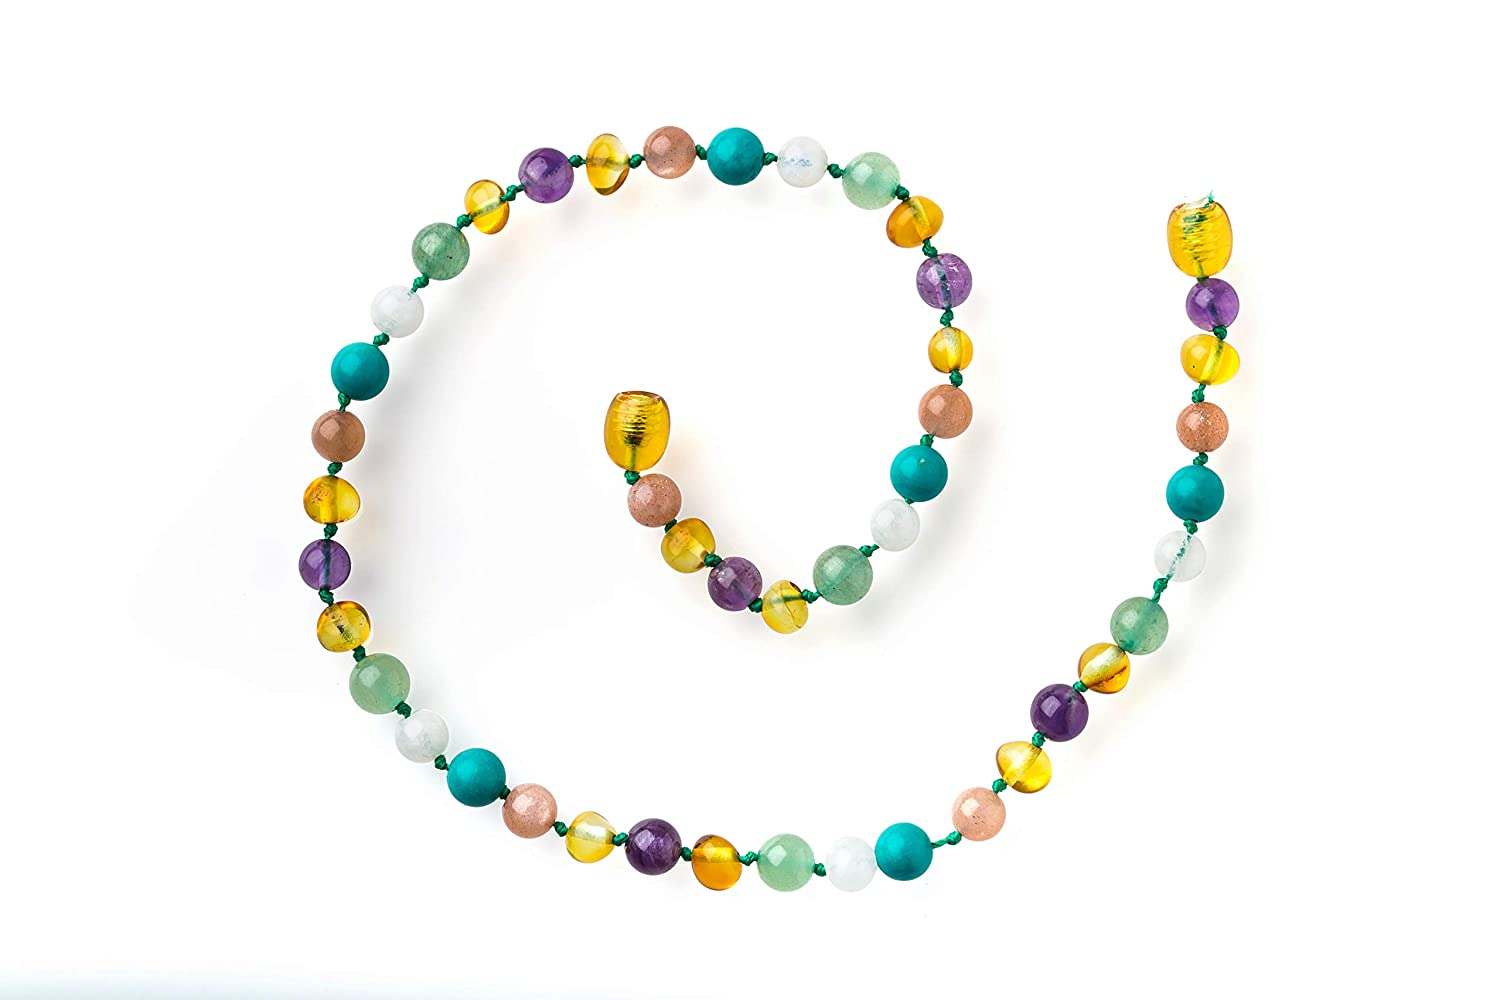 Yellow Love 13 Inch Necklace with Gemstones by Seven Whales